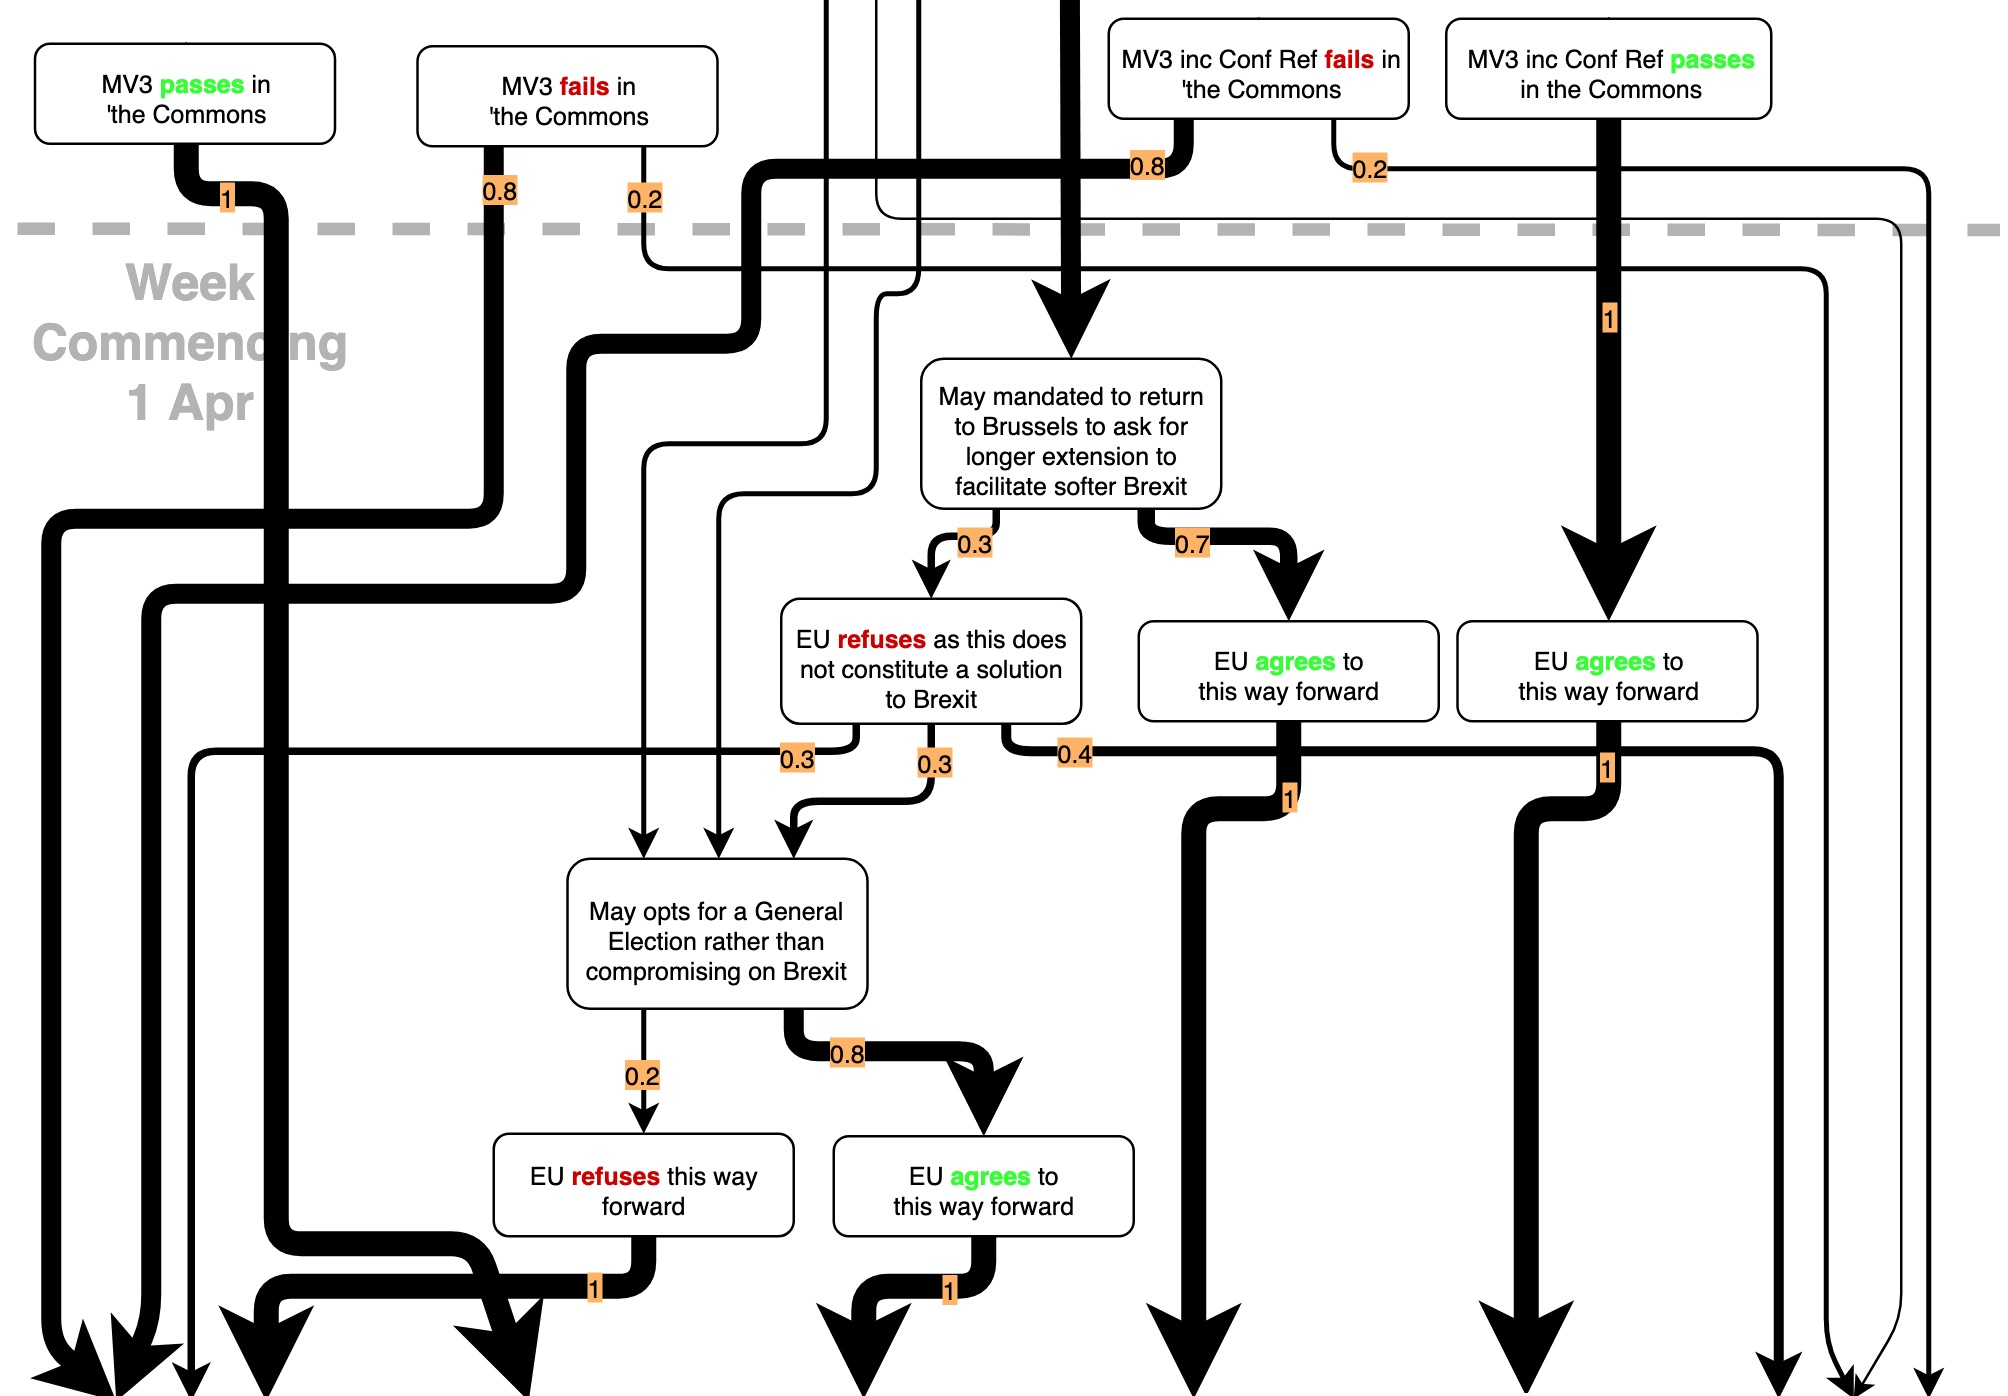 One of many flowcharts explaining Brexit permutations created by Jon Worth, a communications consultant for European politicians.